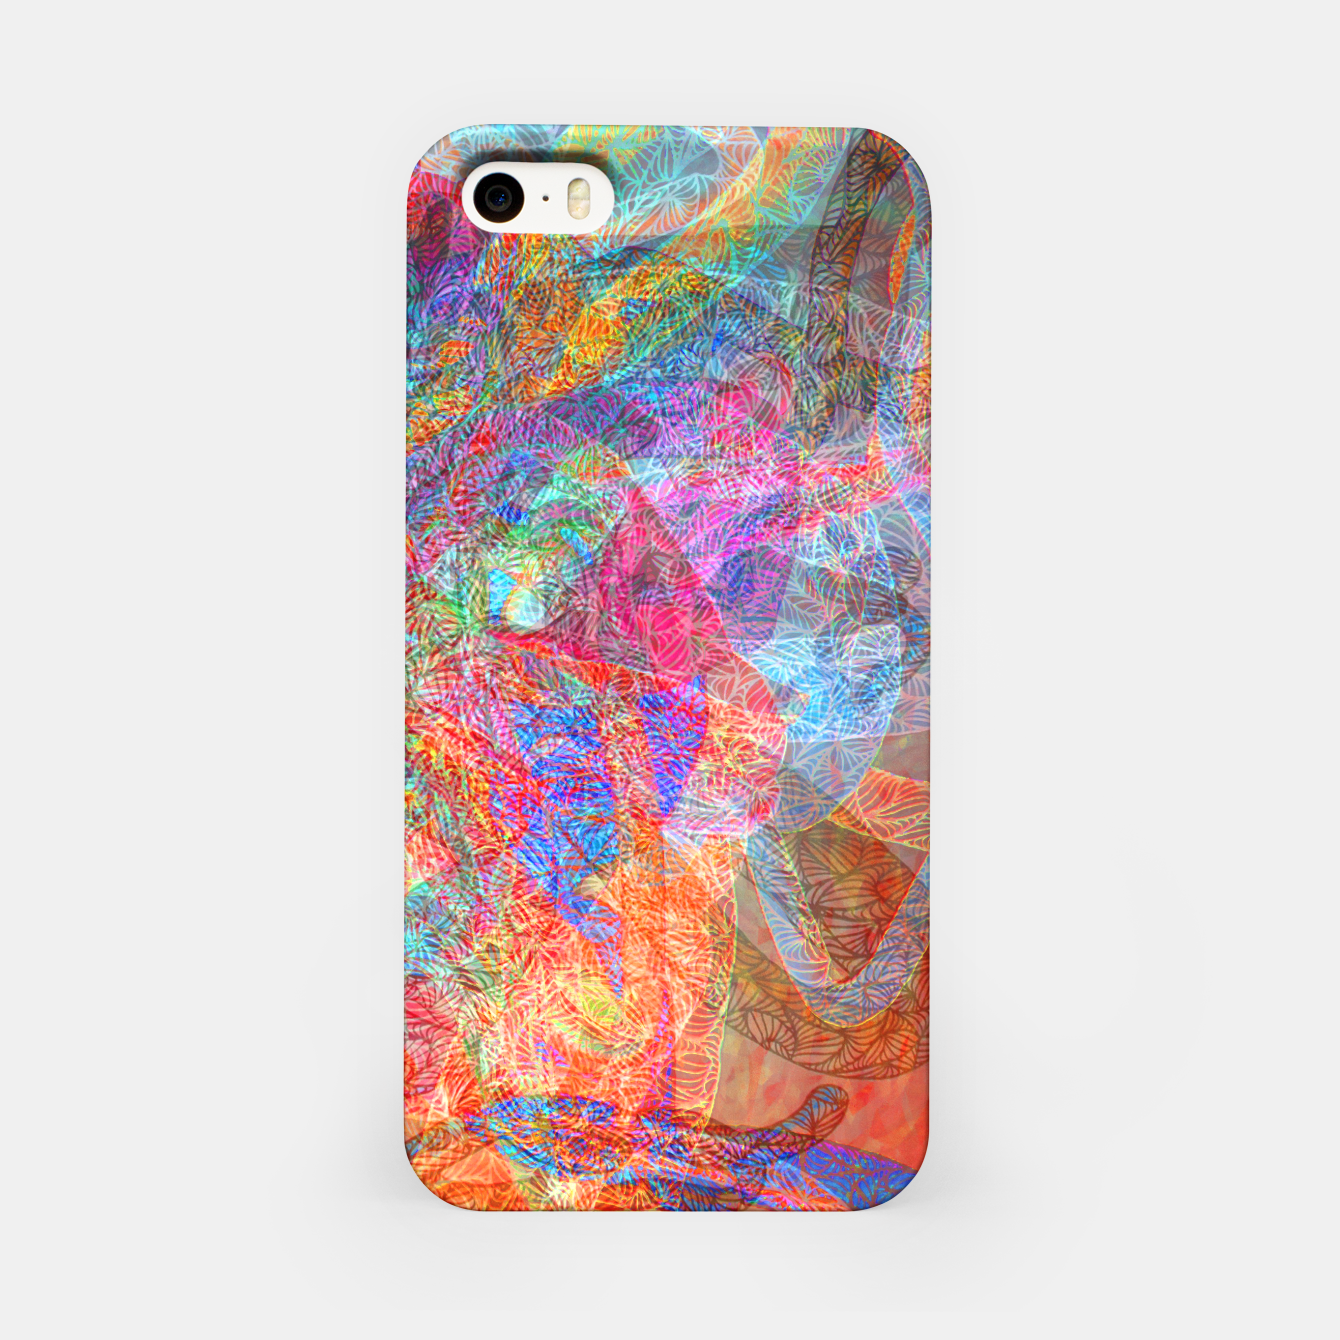 Image of sotm006 iPhone Case - Live Heroes